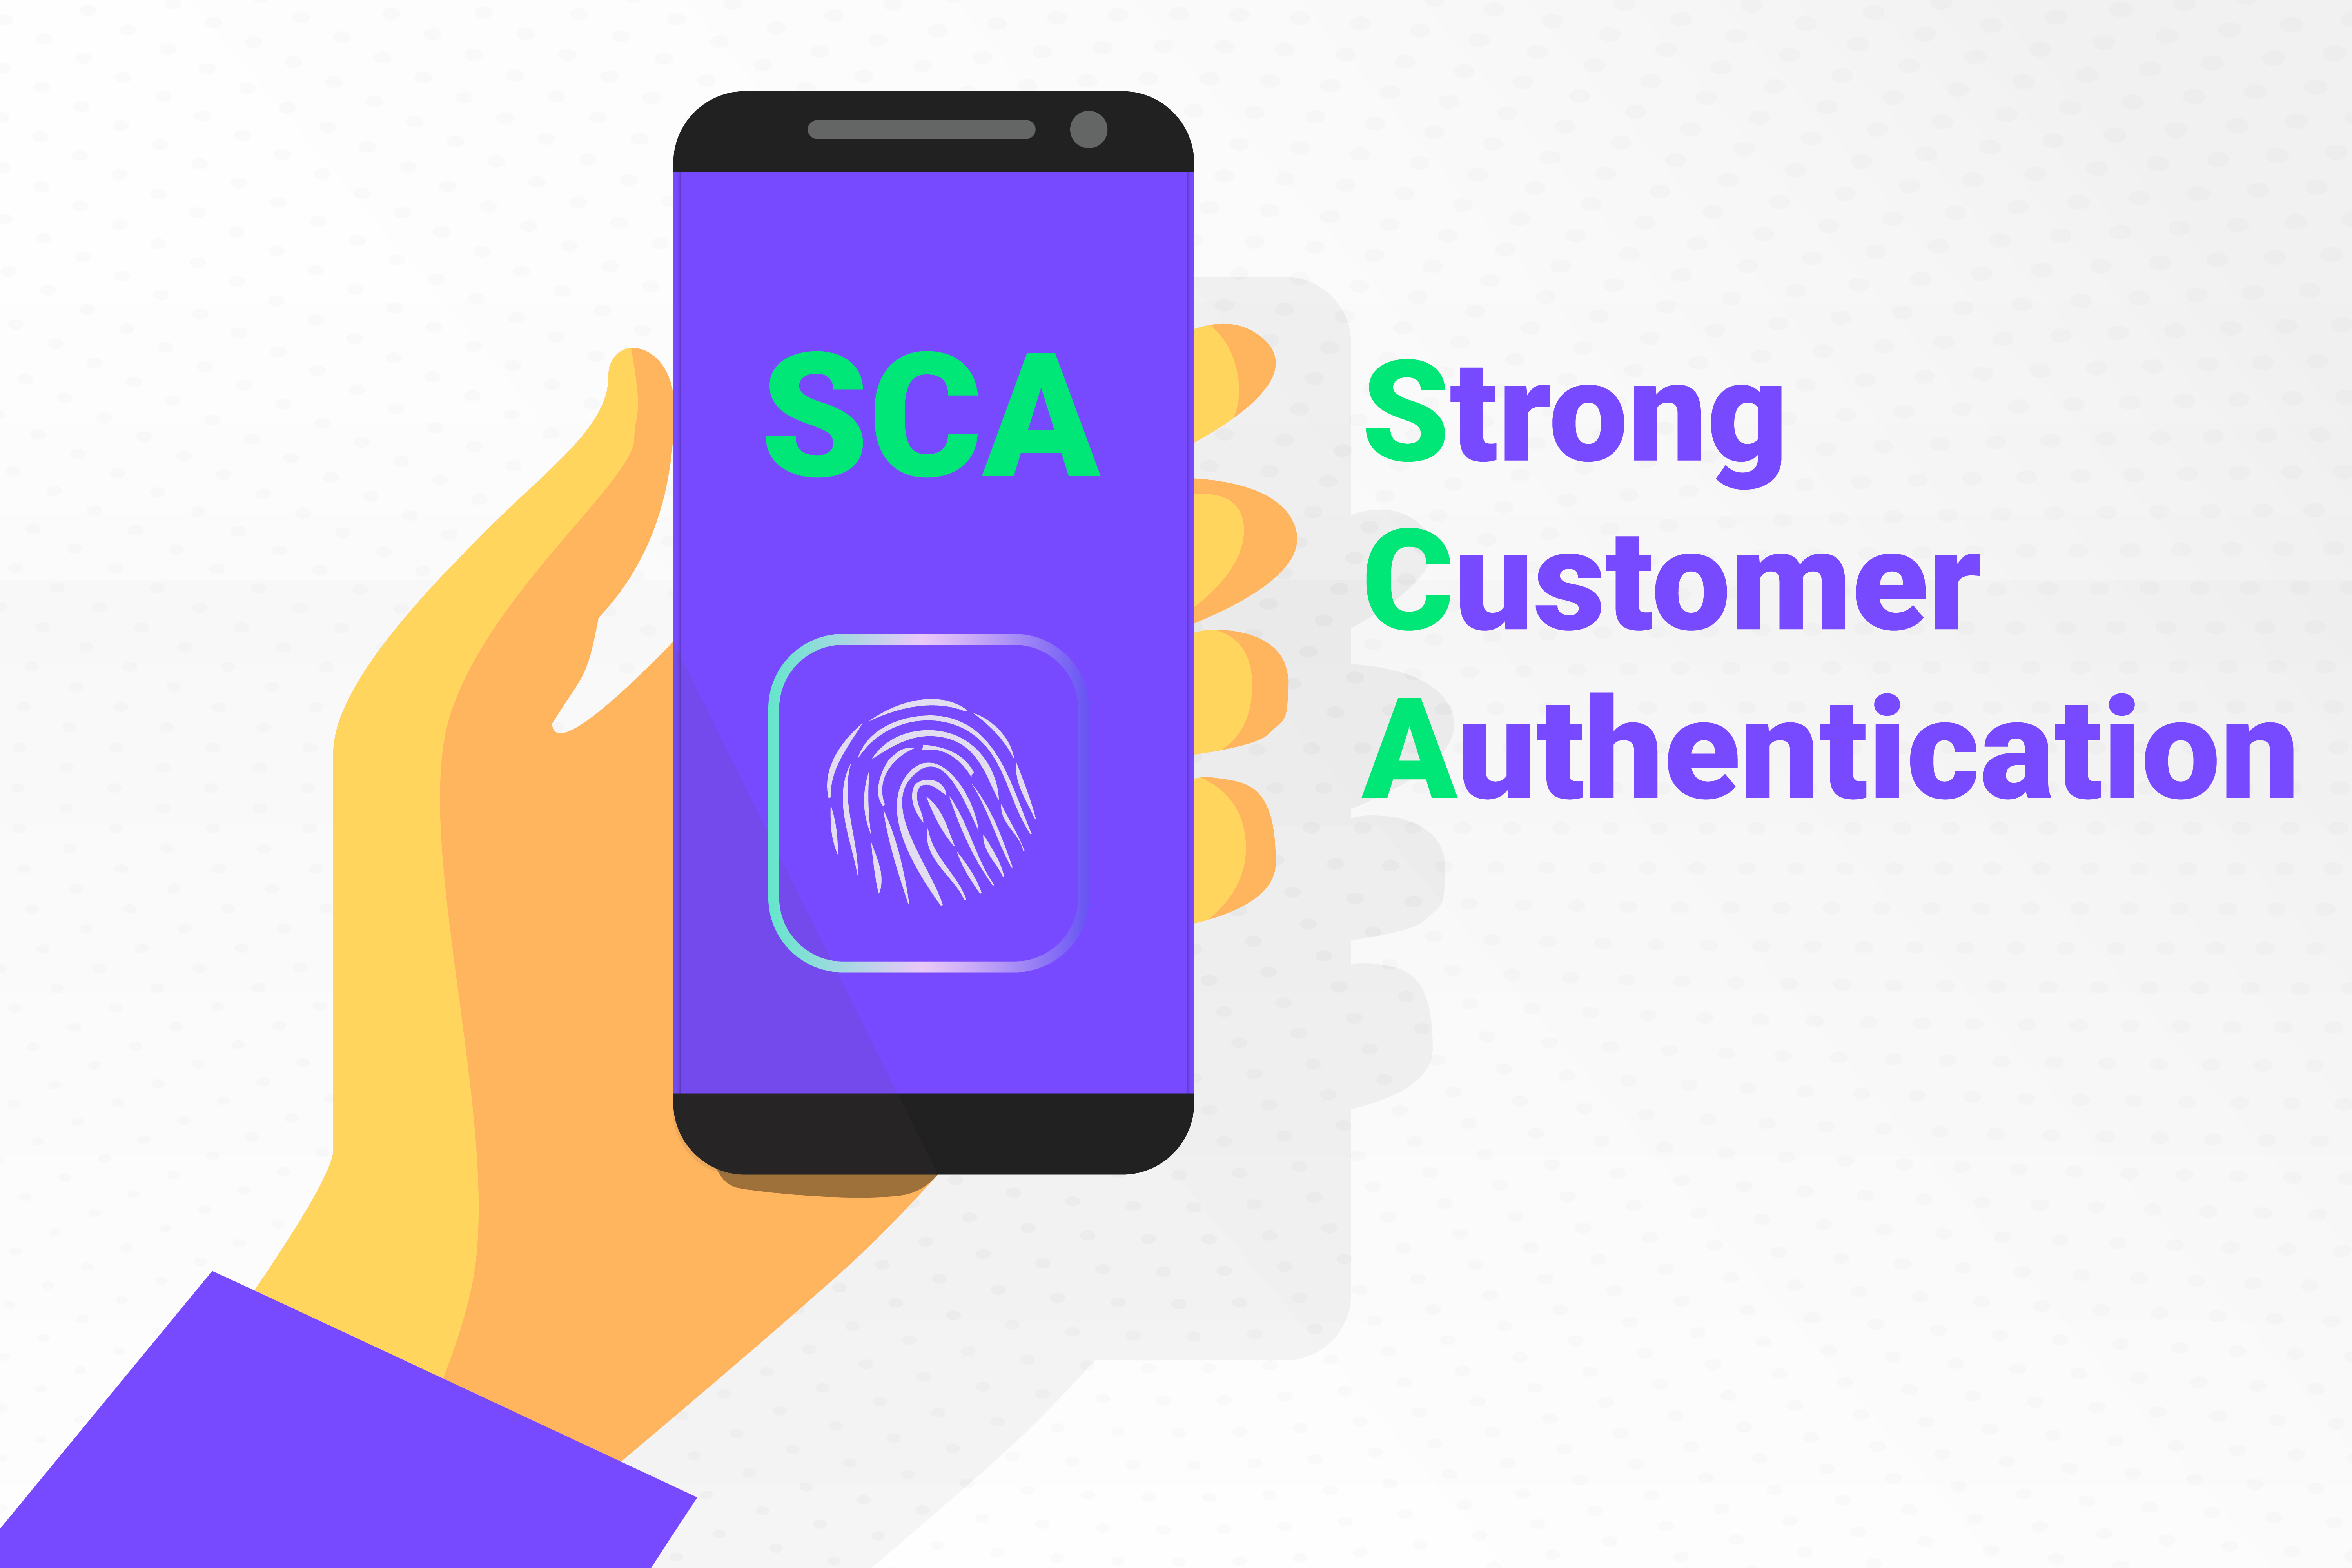 SCA (Strong Customer Authentication)